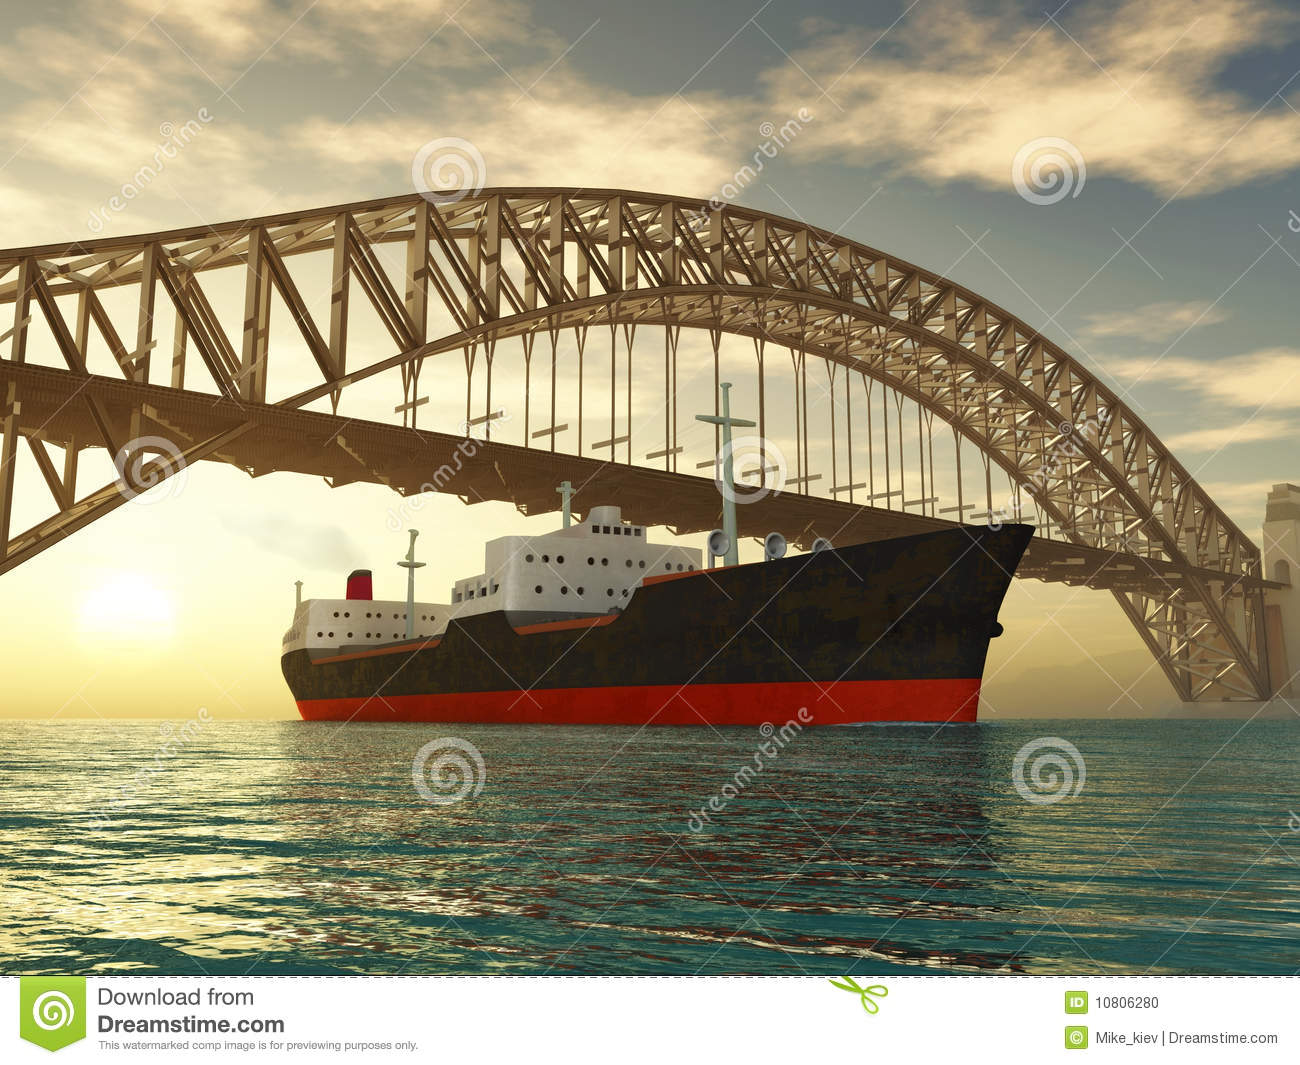 Cargo Ship Sail Under Bridge Stock Photo.